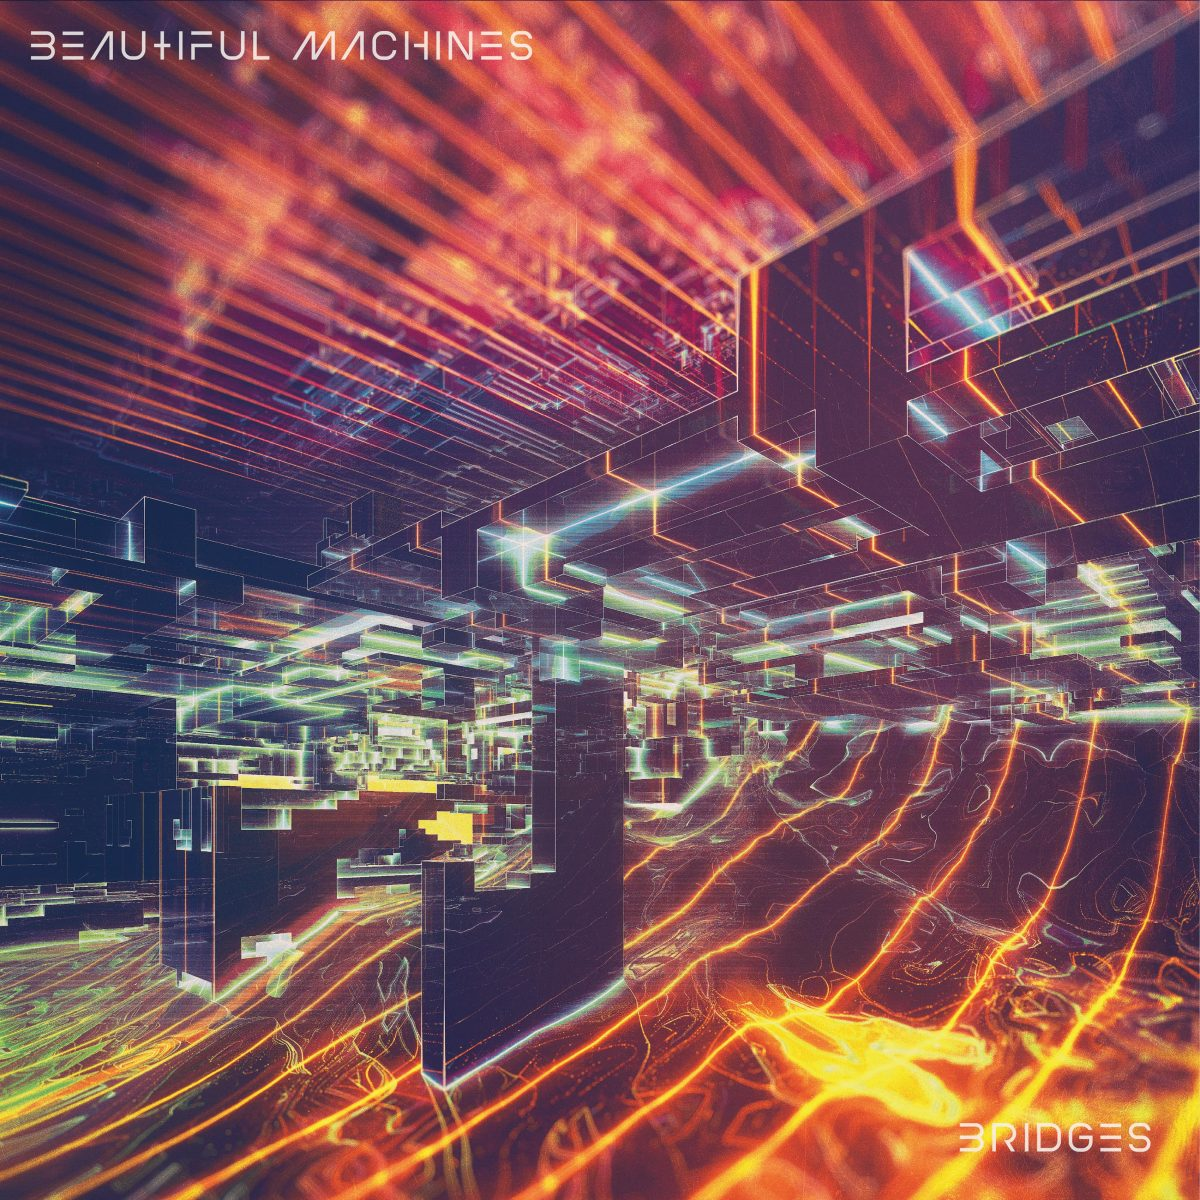 Beautiful Machines - Million Miles